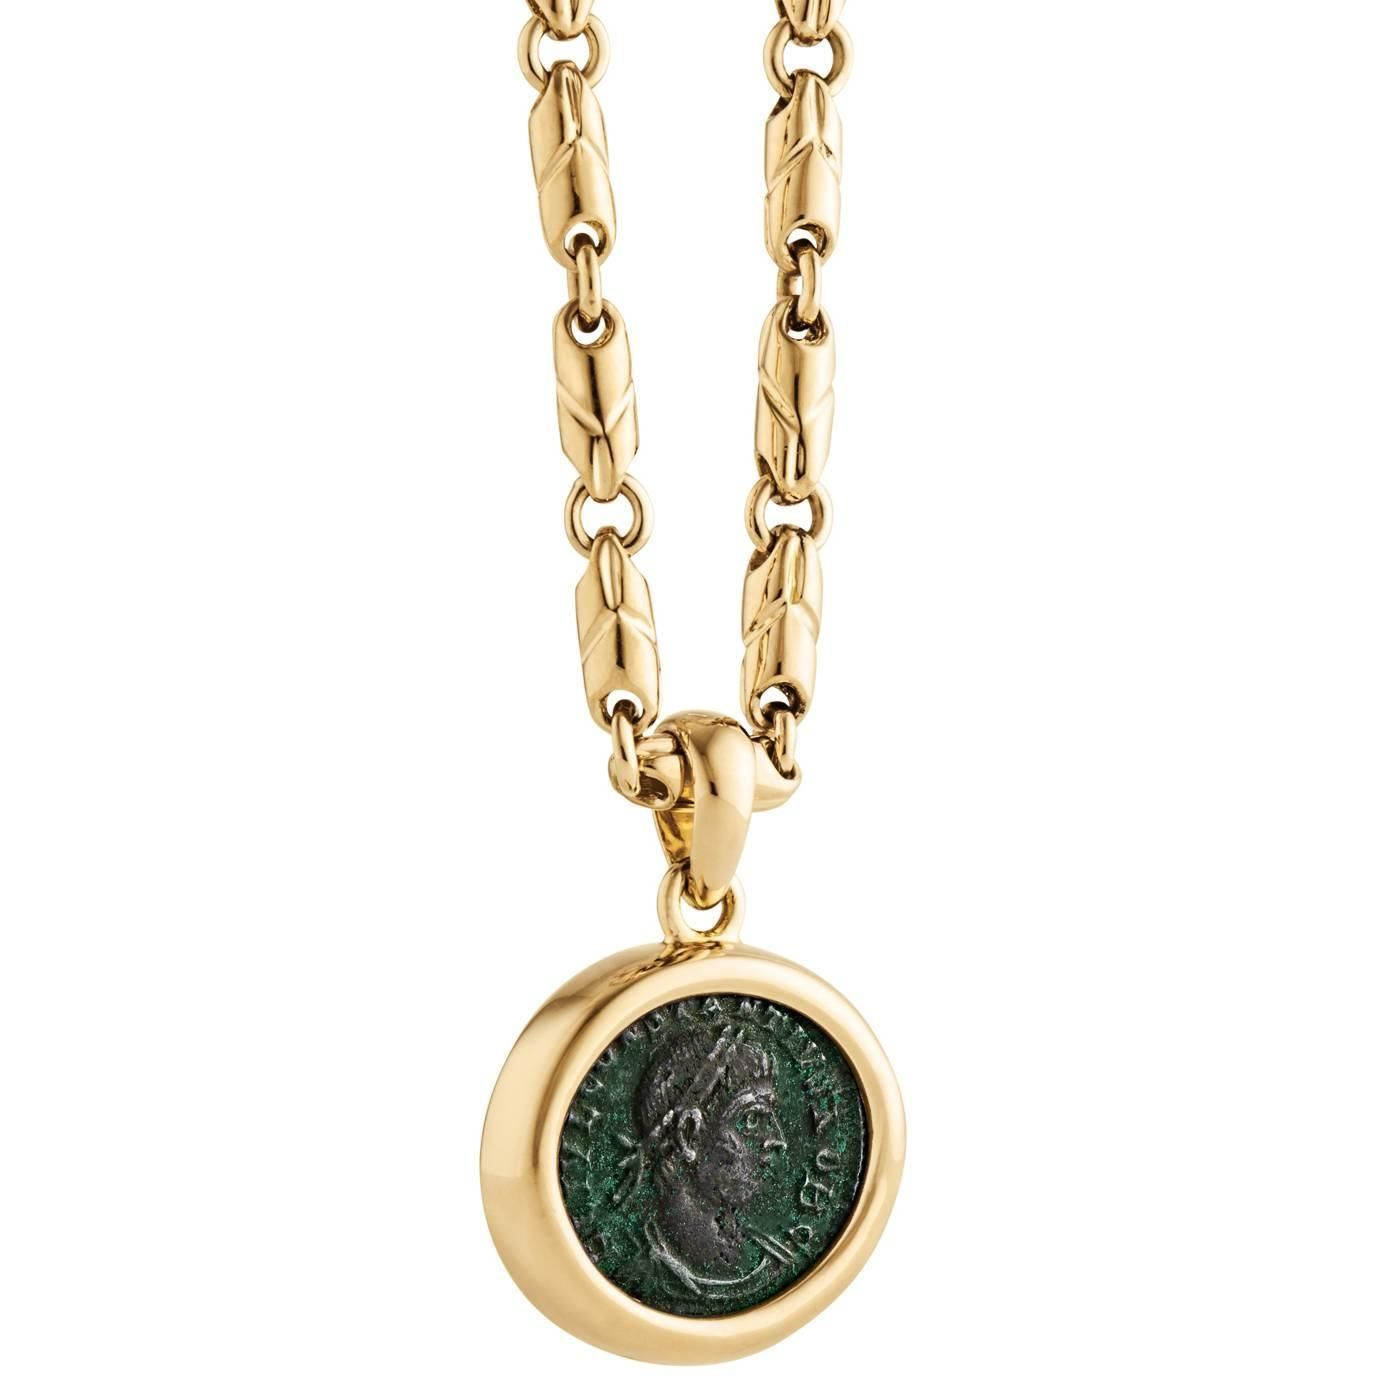 pendant estate panther necklace link gold yellow roman coin i other